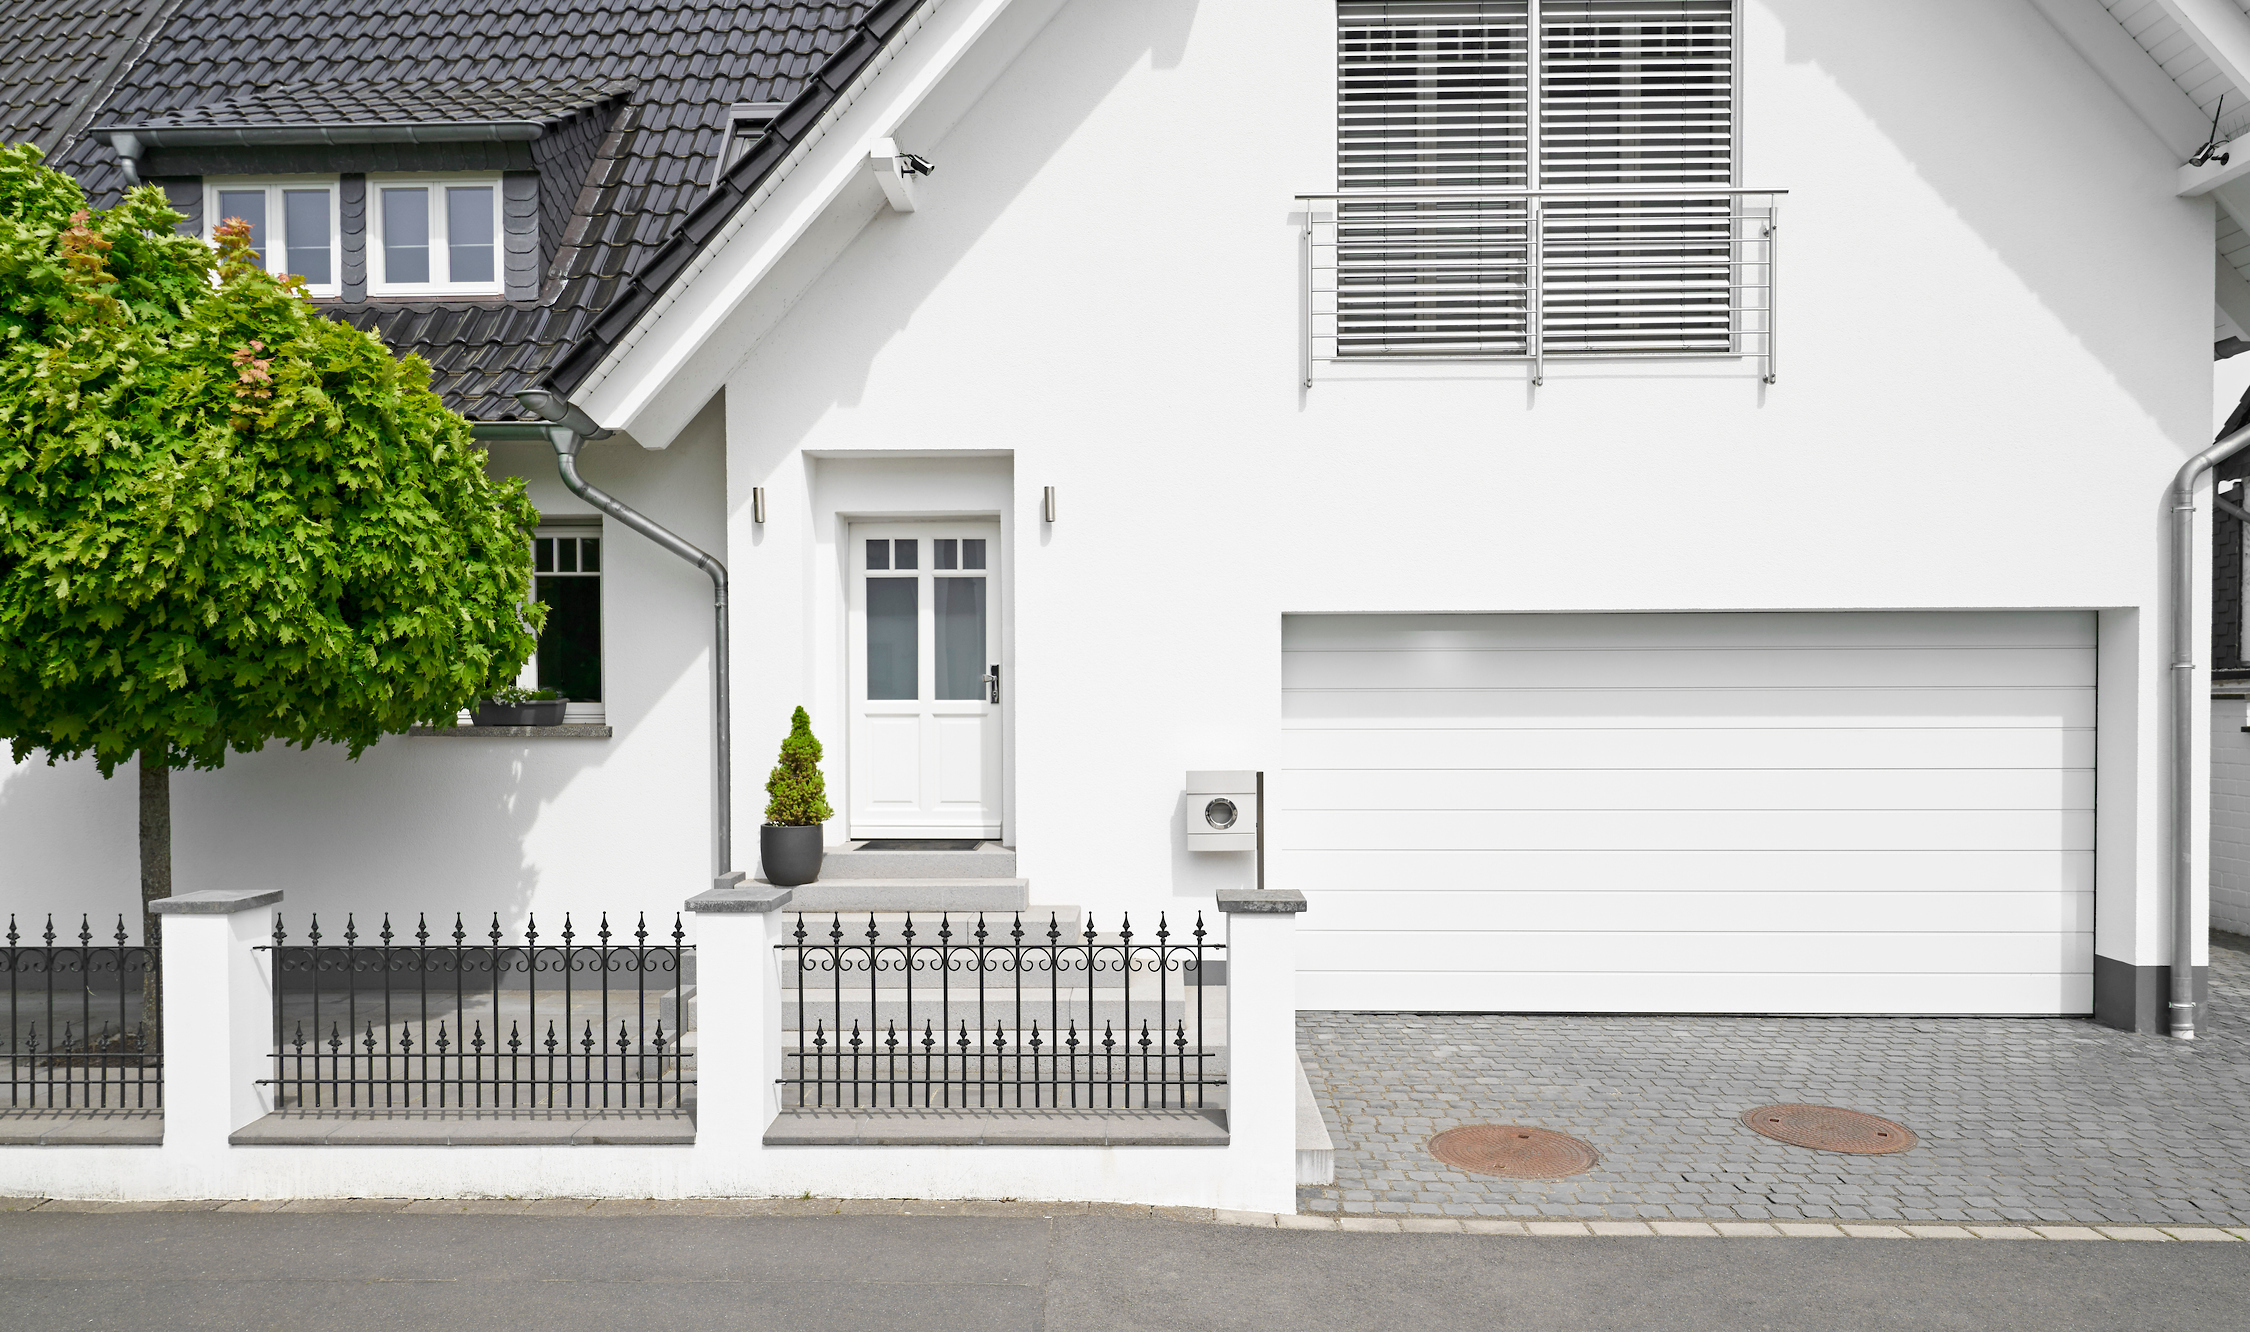 Germany, Cologne, white new built one-family house with garage